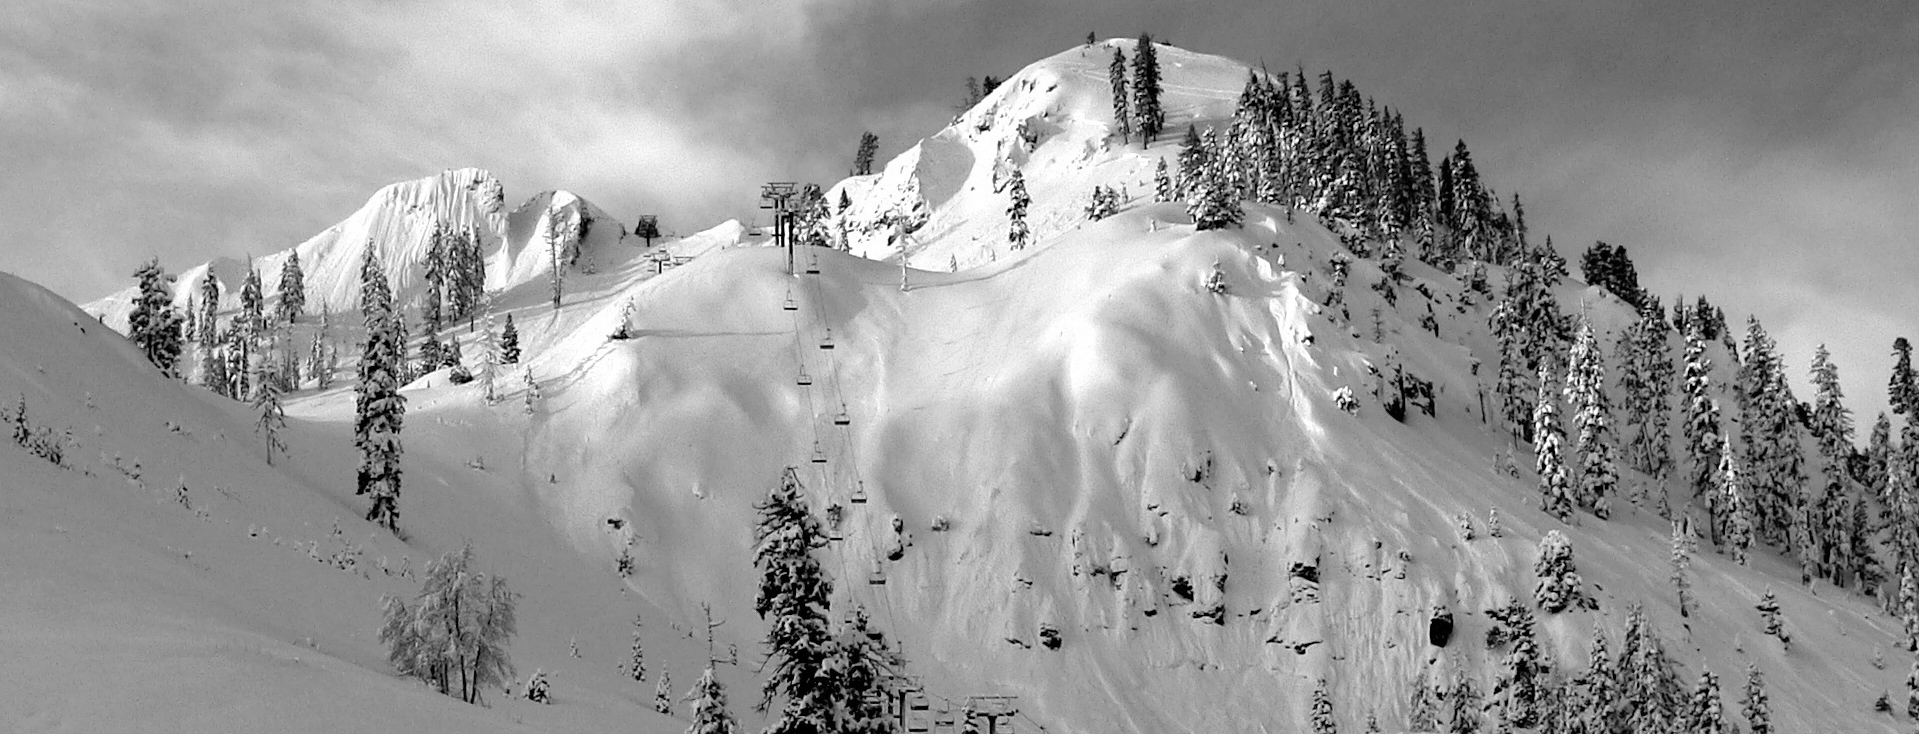 the slopes of Squaw Valley